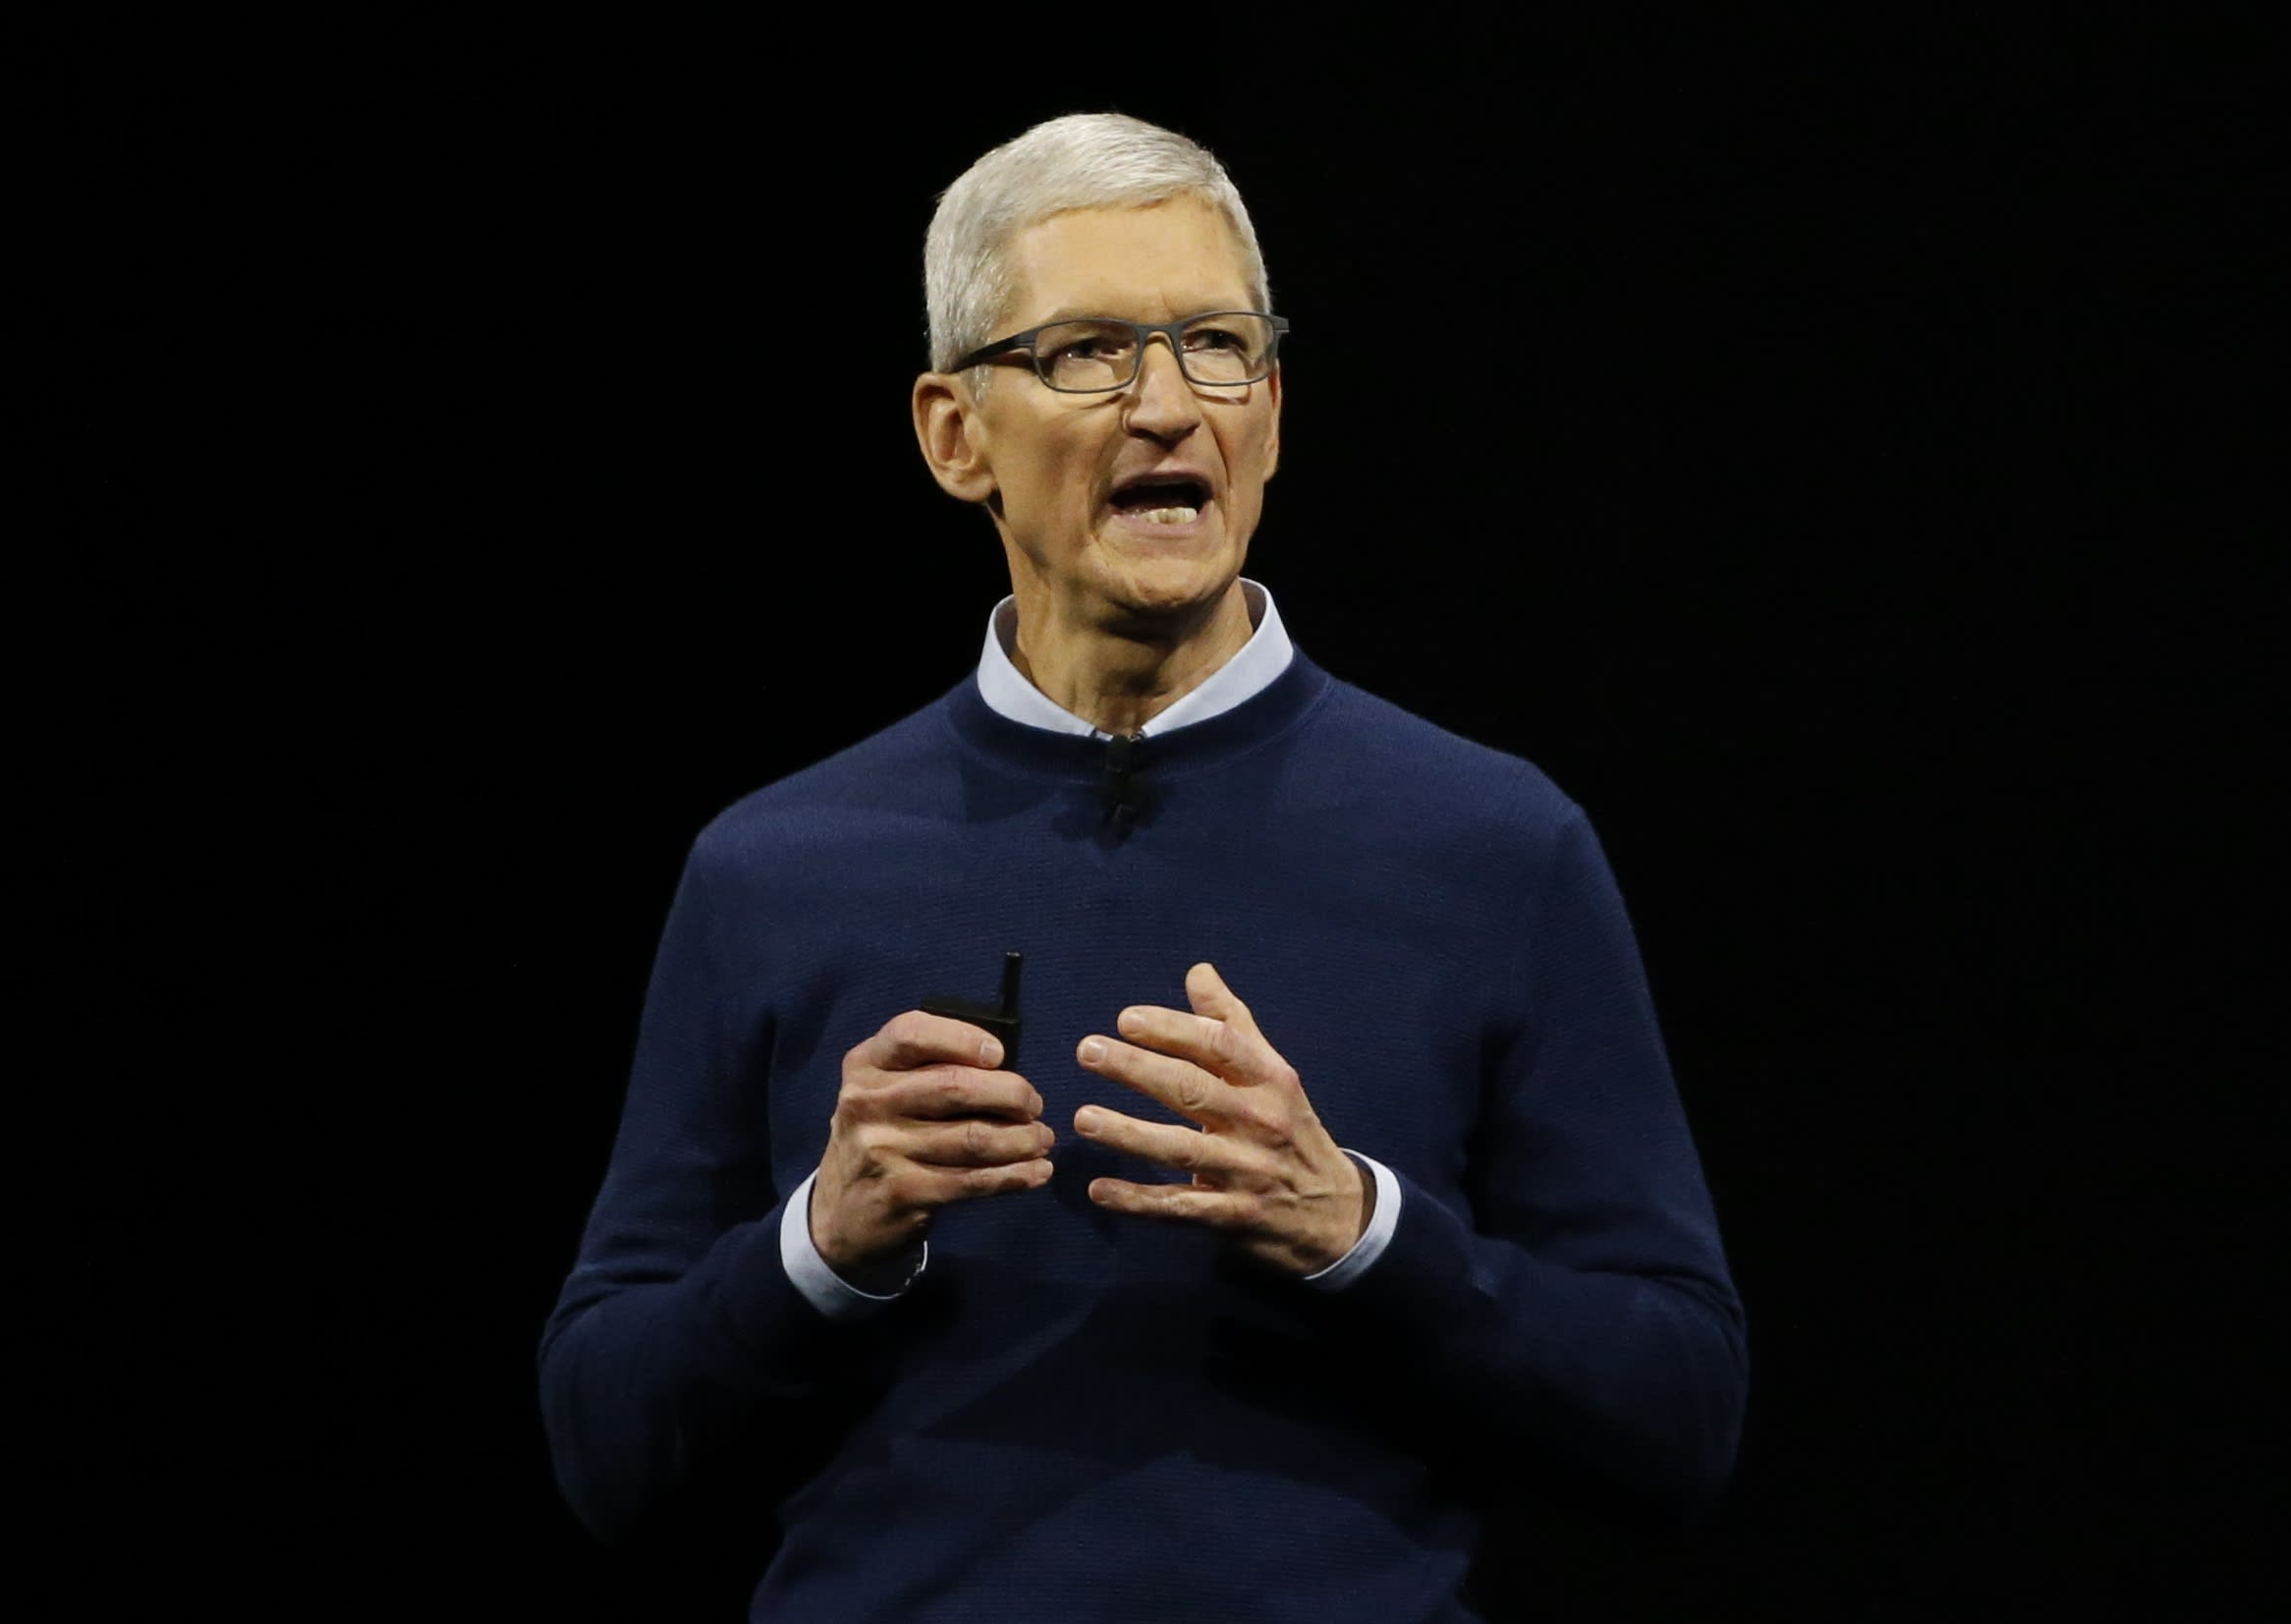 Apple CEO Tim Cook defends decision to remove VPN apps in China